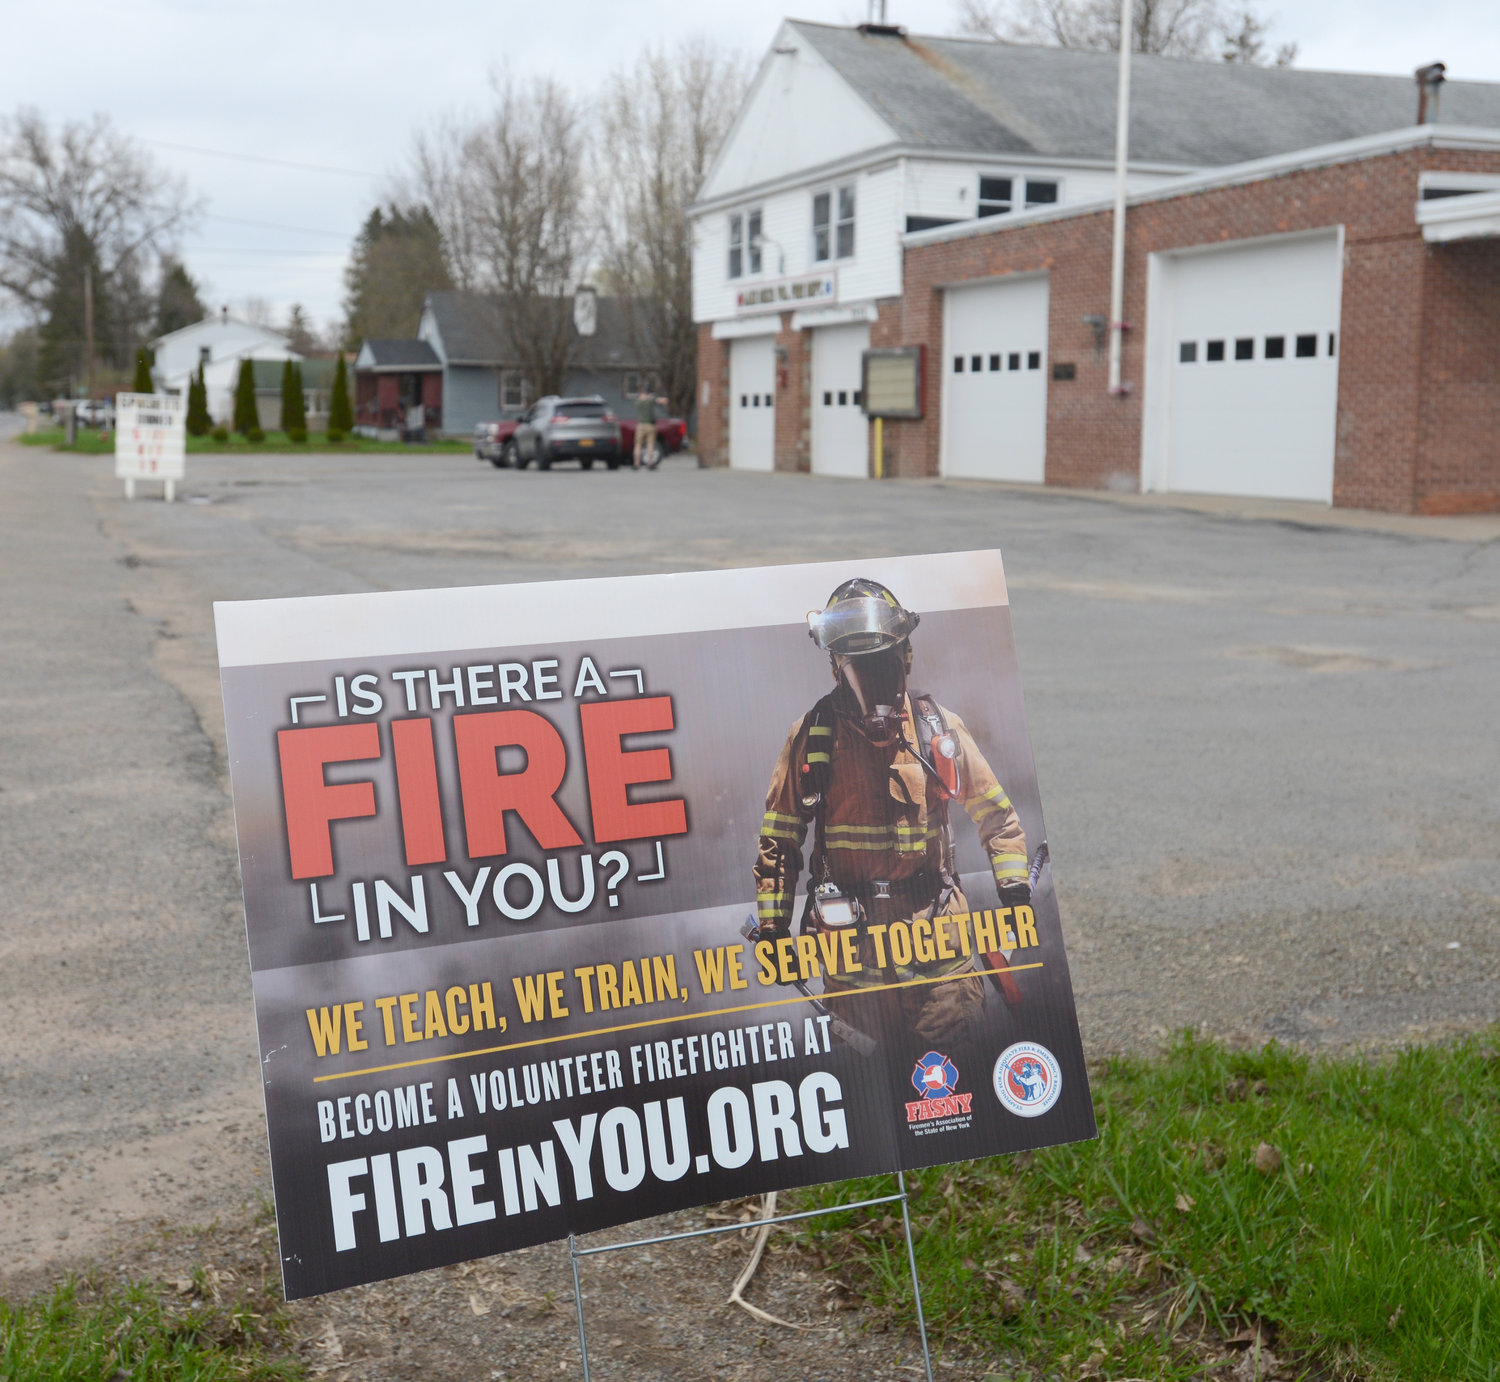 RECRUITNY — A sign in front of the Lake Delta firehouse on Elmer Hill Road seeks to entice new volunteers. Lake Delta is one of nearly two dozen fire departments across the county holding an open house this weekend as part of the RecruitNY effort.